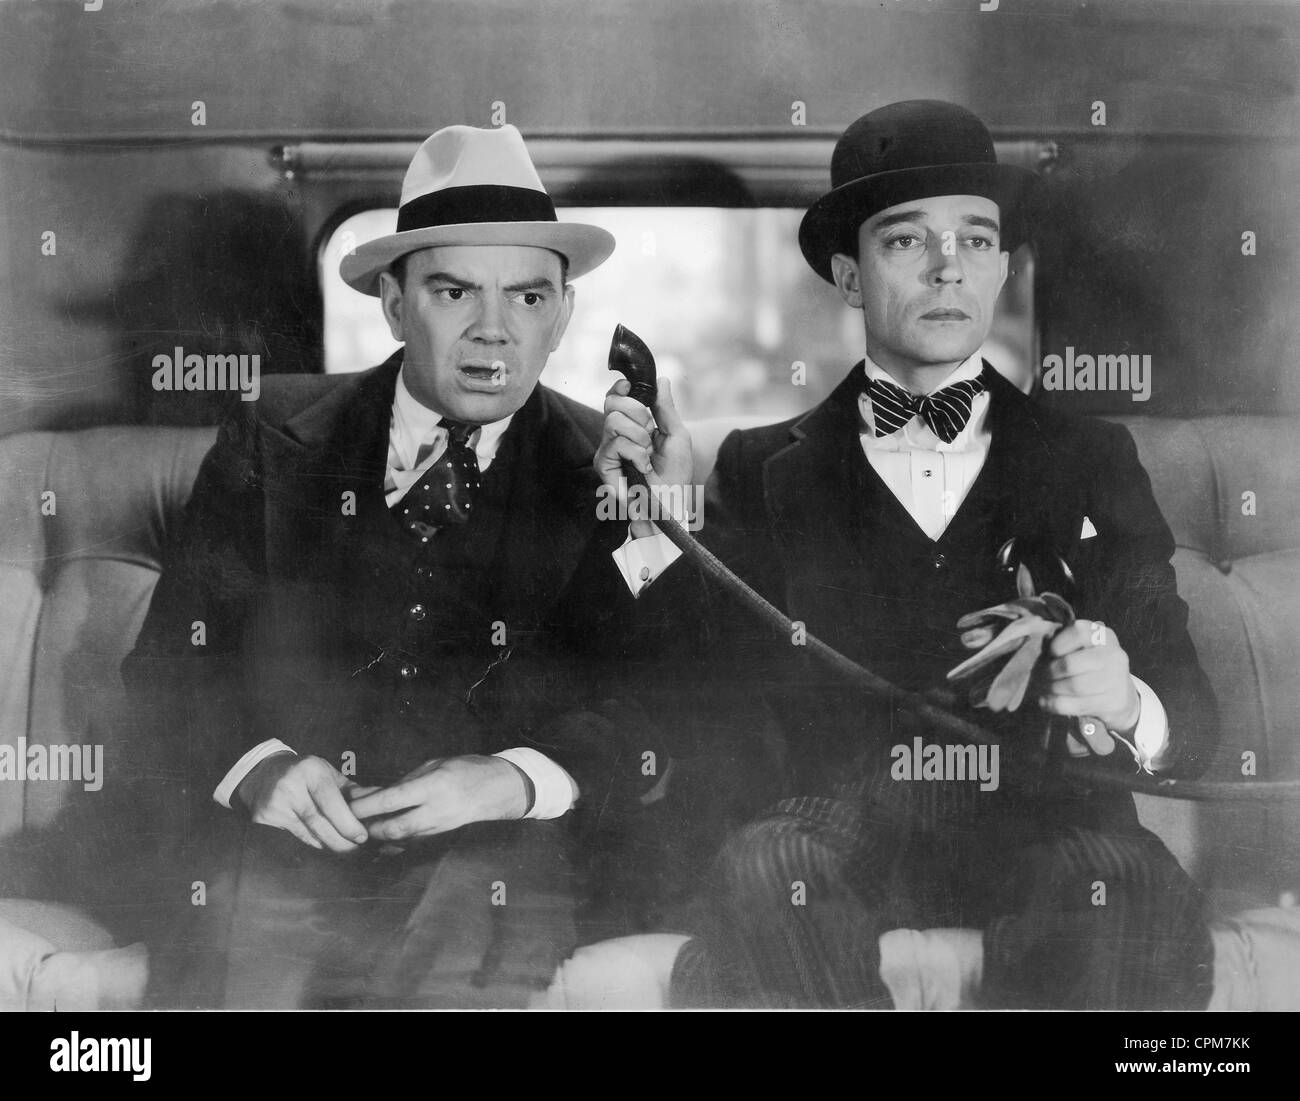 Buster Keaton Hat Stock Photos   Buster Keaton Hat Stock Images - Alamy 7596a9e994f